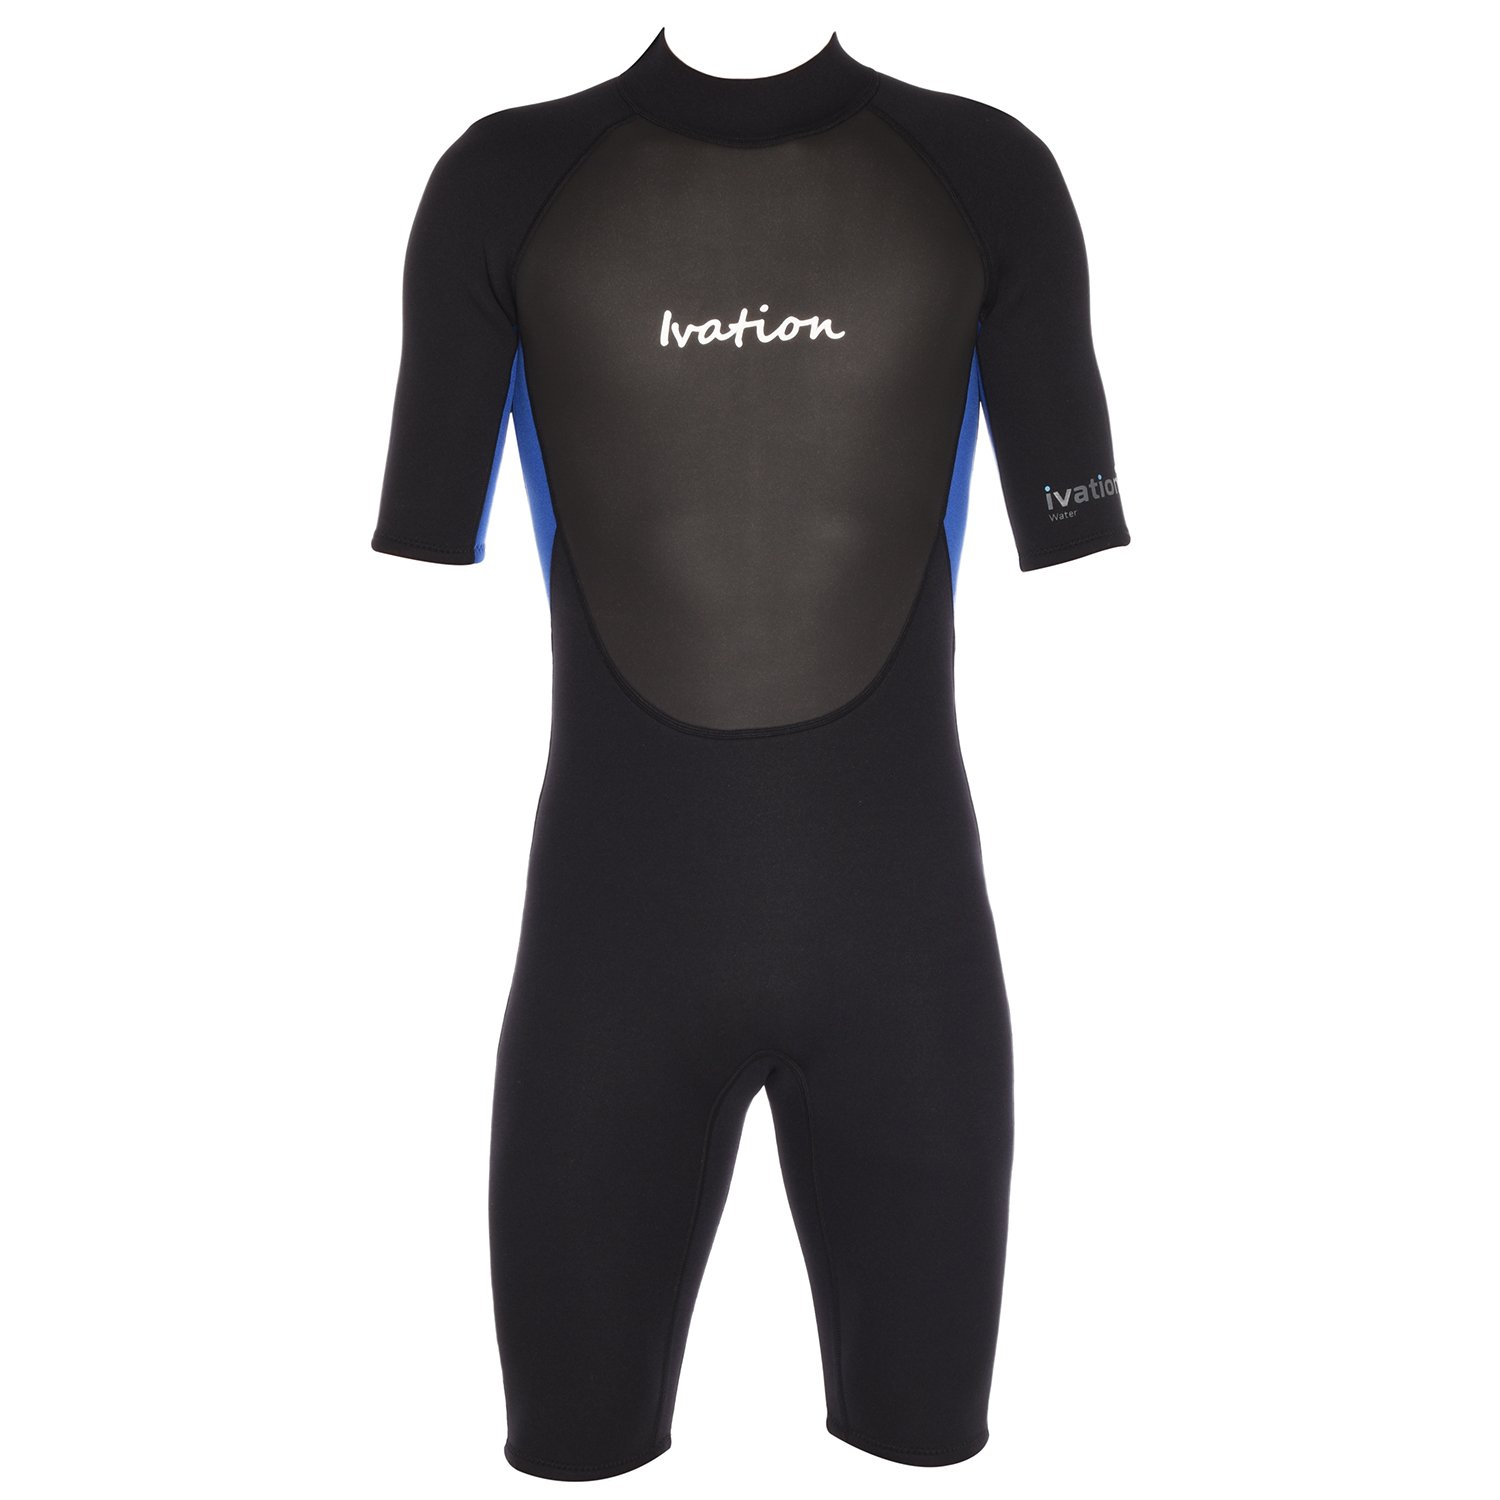 14e1681c06 Ivation 3mm Short Wetsuit for Adult - Crafted of Premium Neoprene &  Features Zipper & Full UV Protection